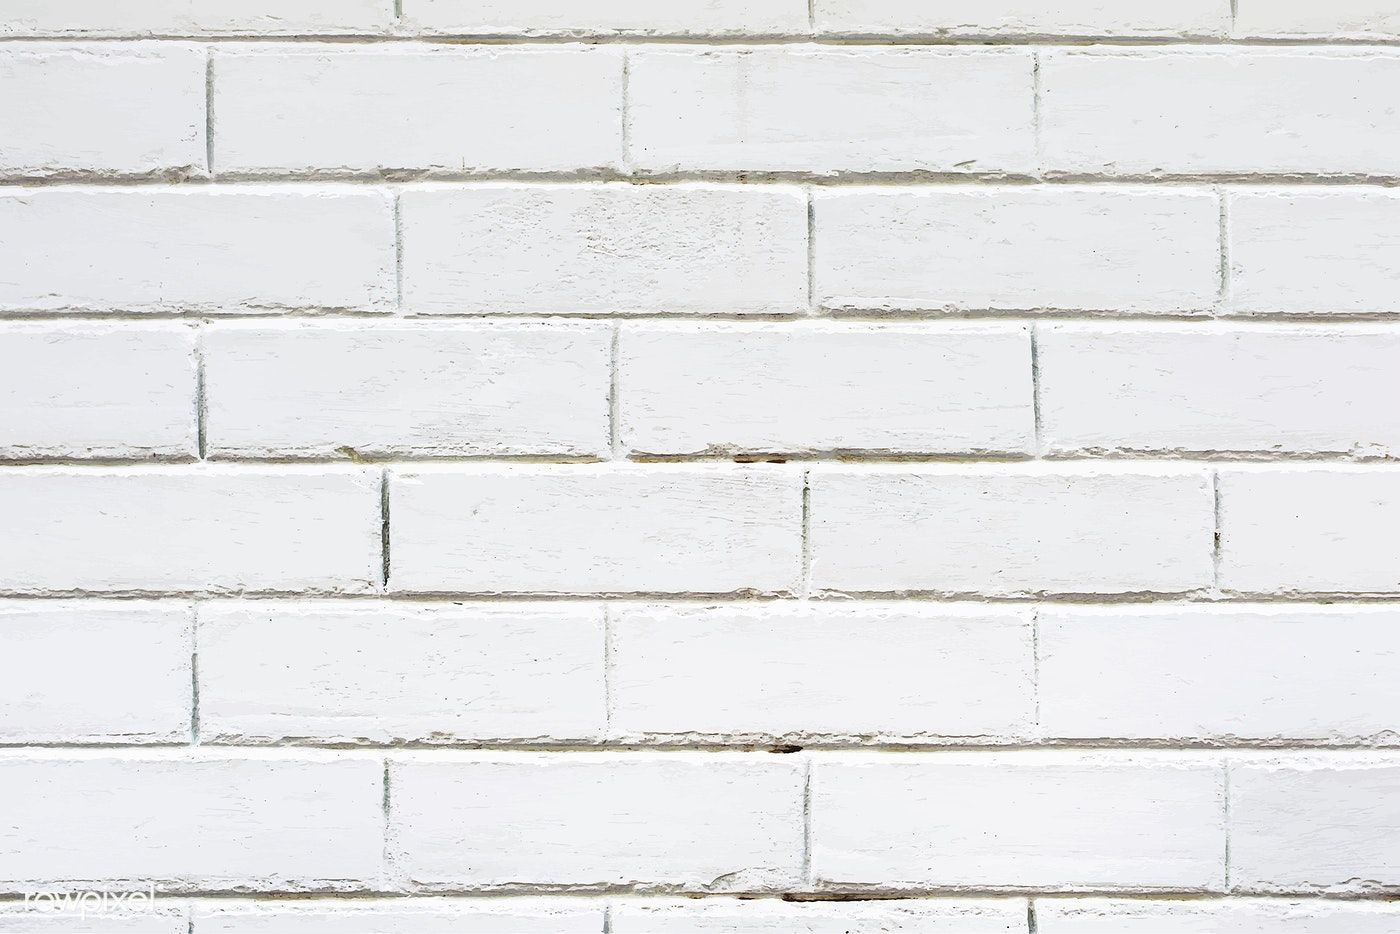 White Brick Wall Textured Background Vector Free Image By Rawpixel Com Kung White Brick Background Brick Wall Wallpaper White Brick Walls